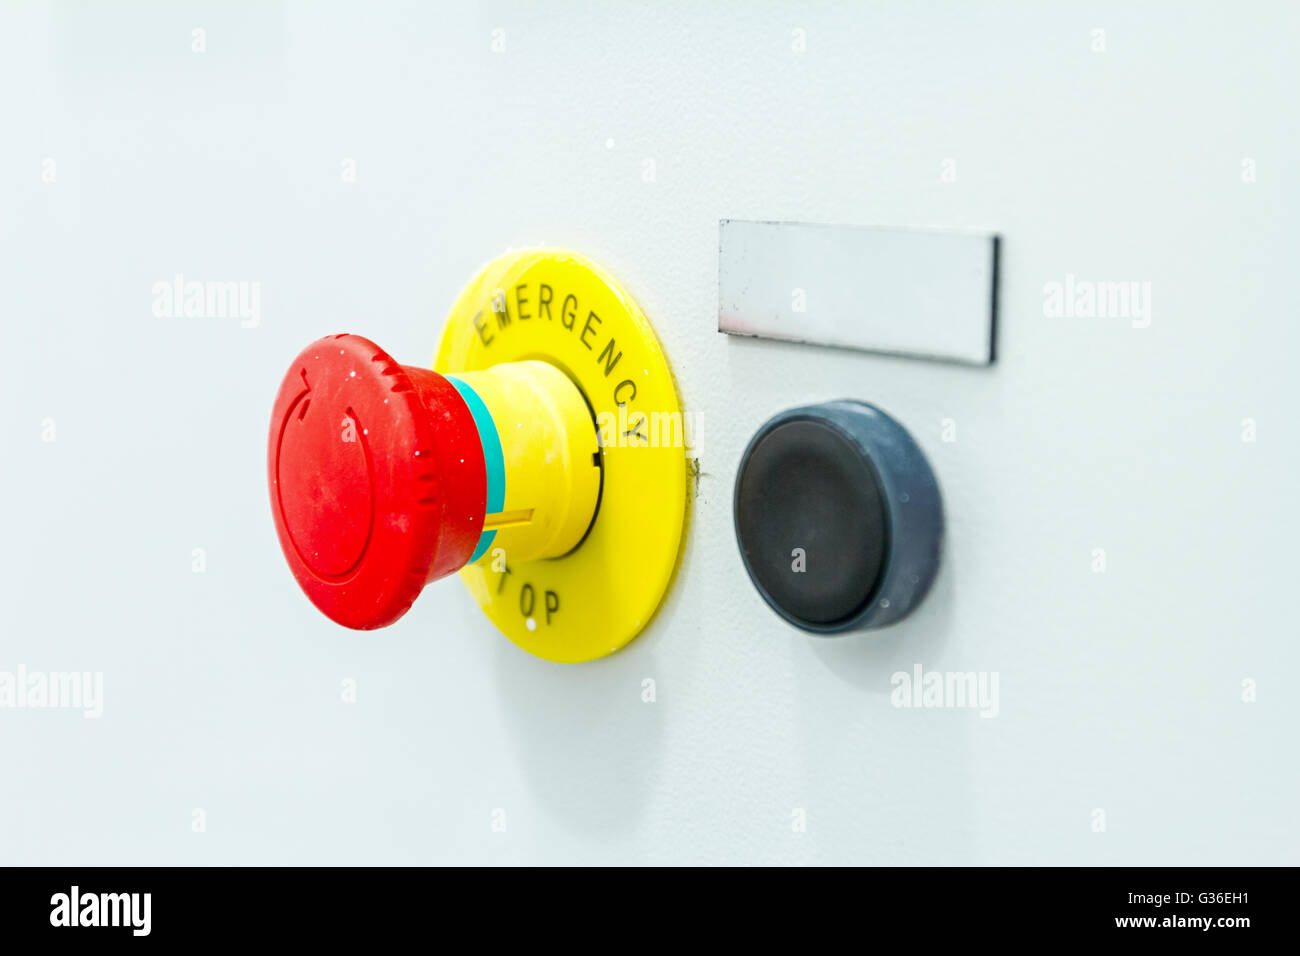 Emergency stop buttons must be obvious to see and simple to operate - Stock Image